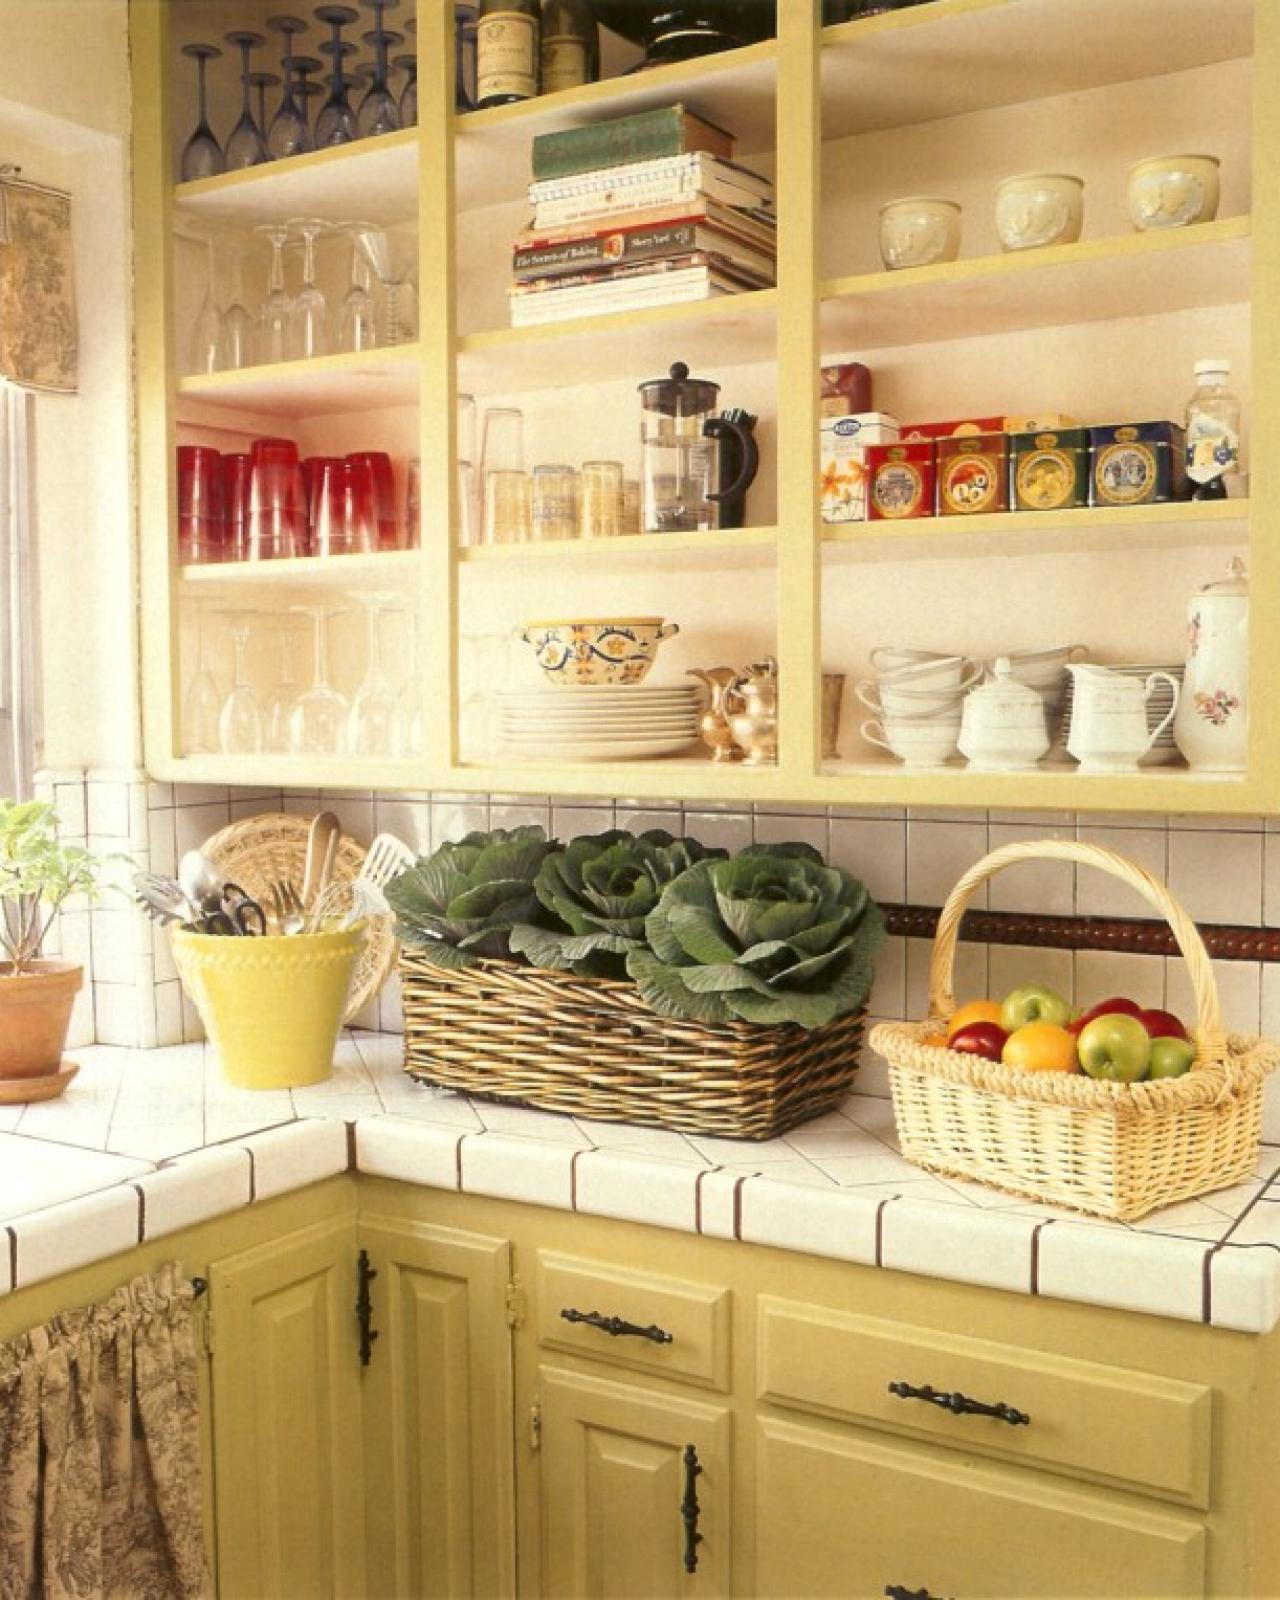 25 Tips For Painting Kitchen Cabinets Diy Network Blog Made Remade Diy